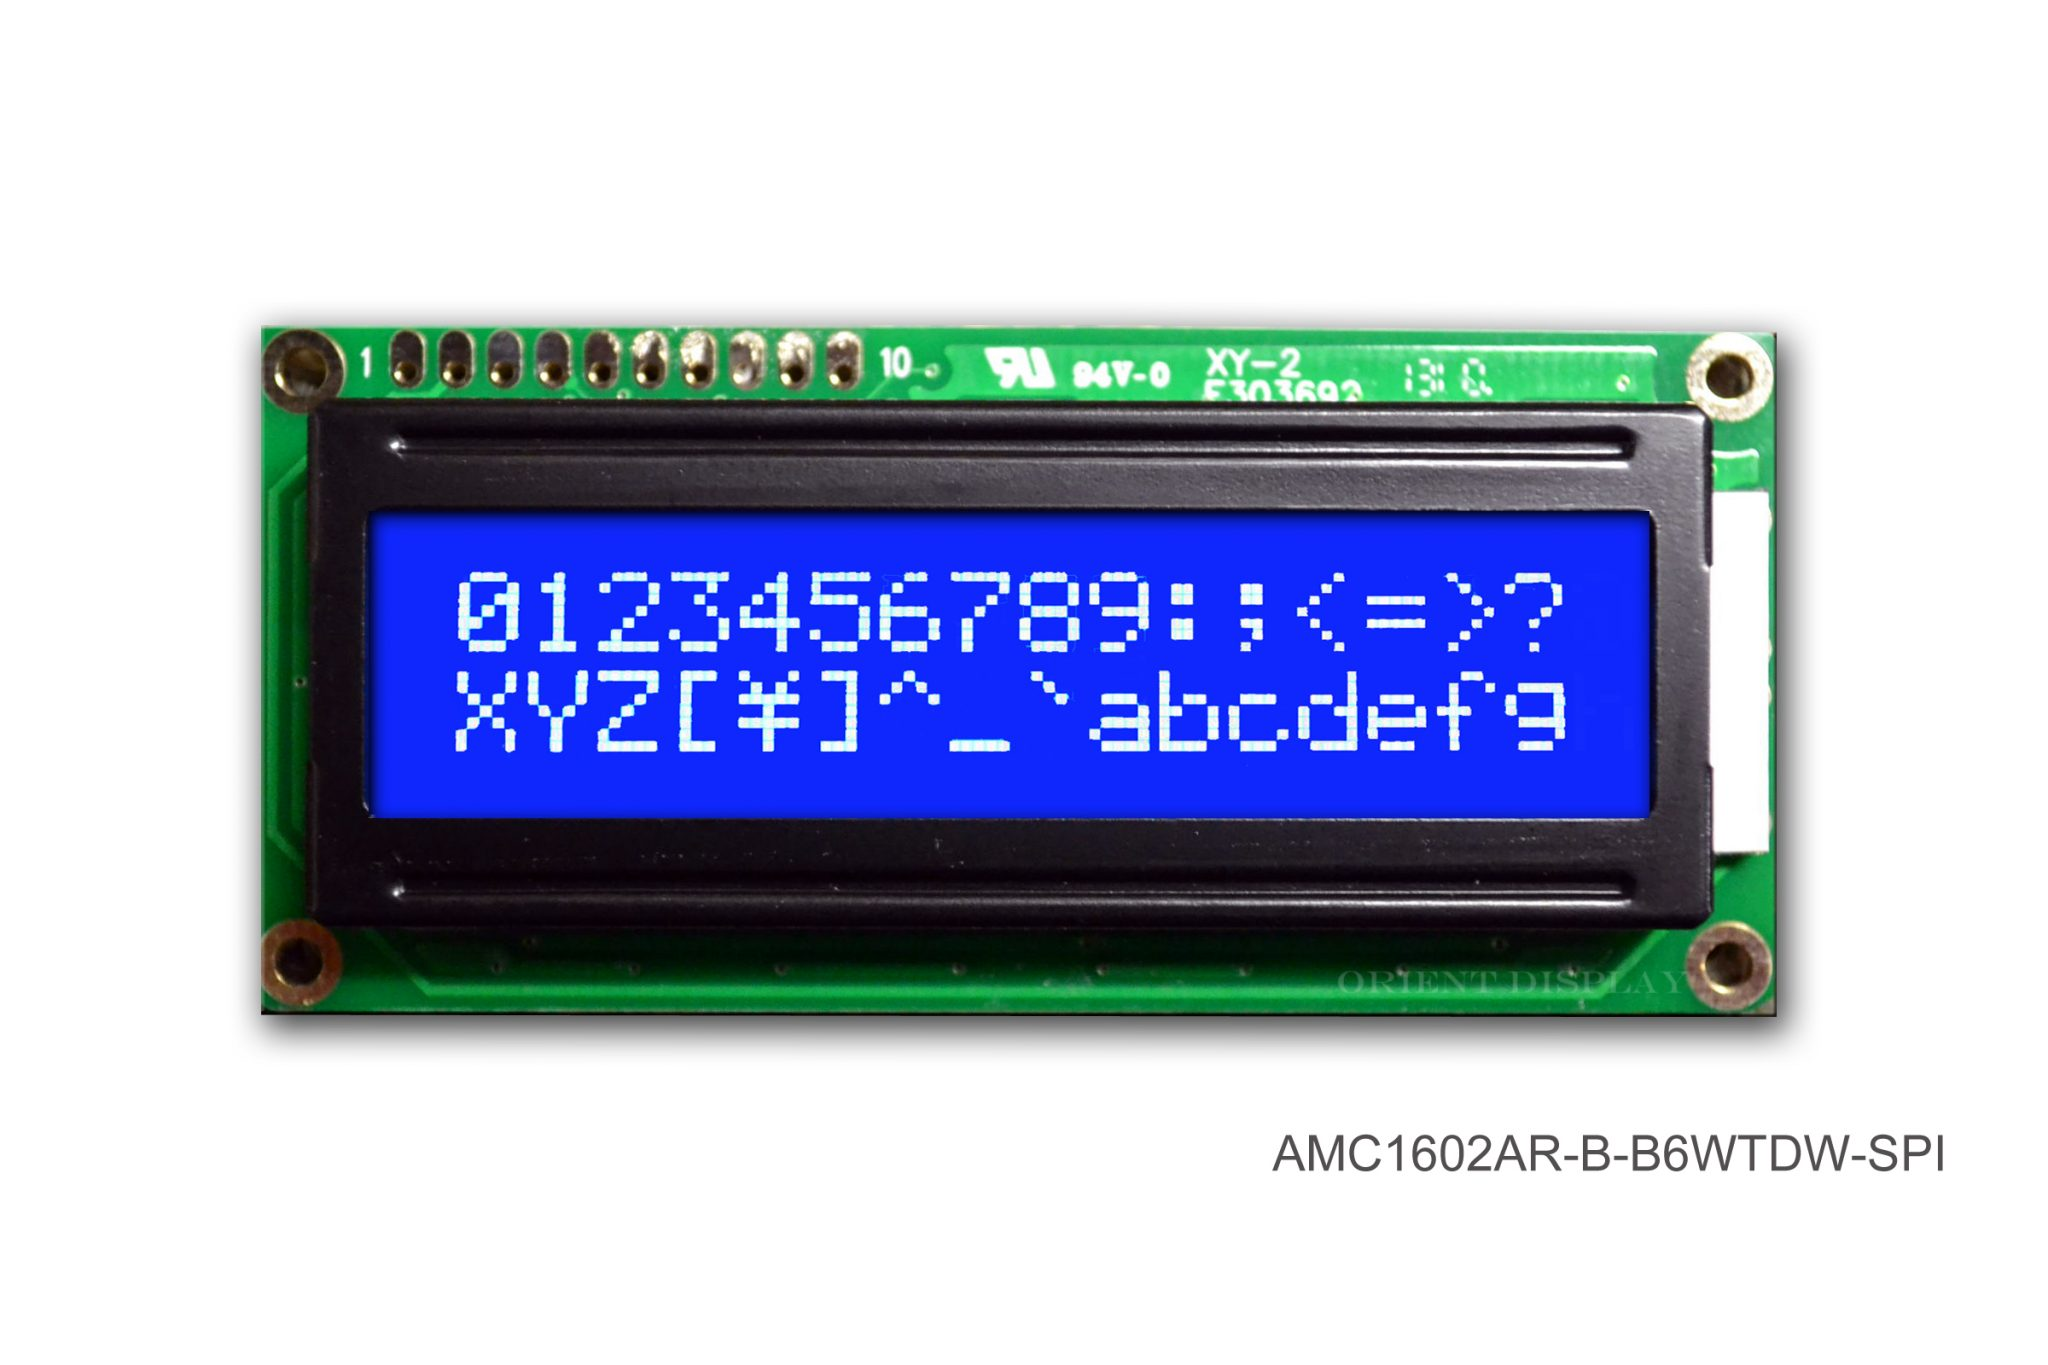 AMC1602AR-B-B6WTDW-SPI (16x2 Character LCD Module - SPI Interface)